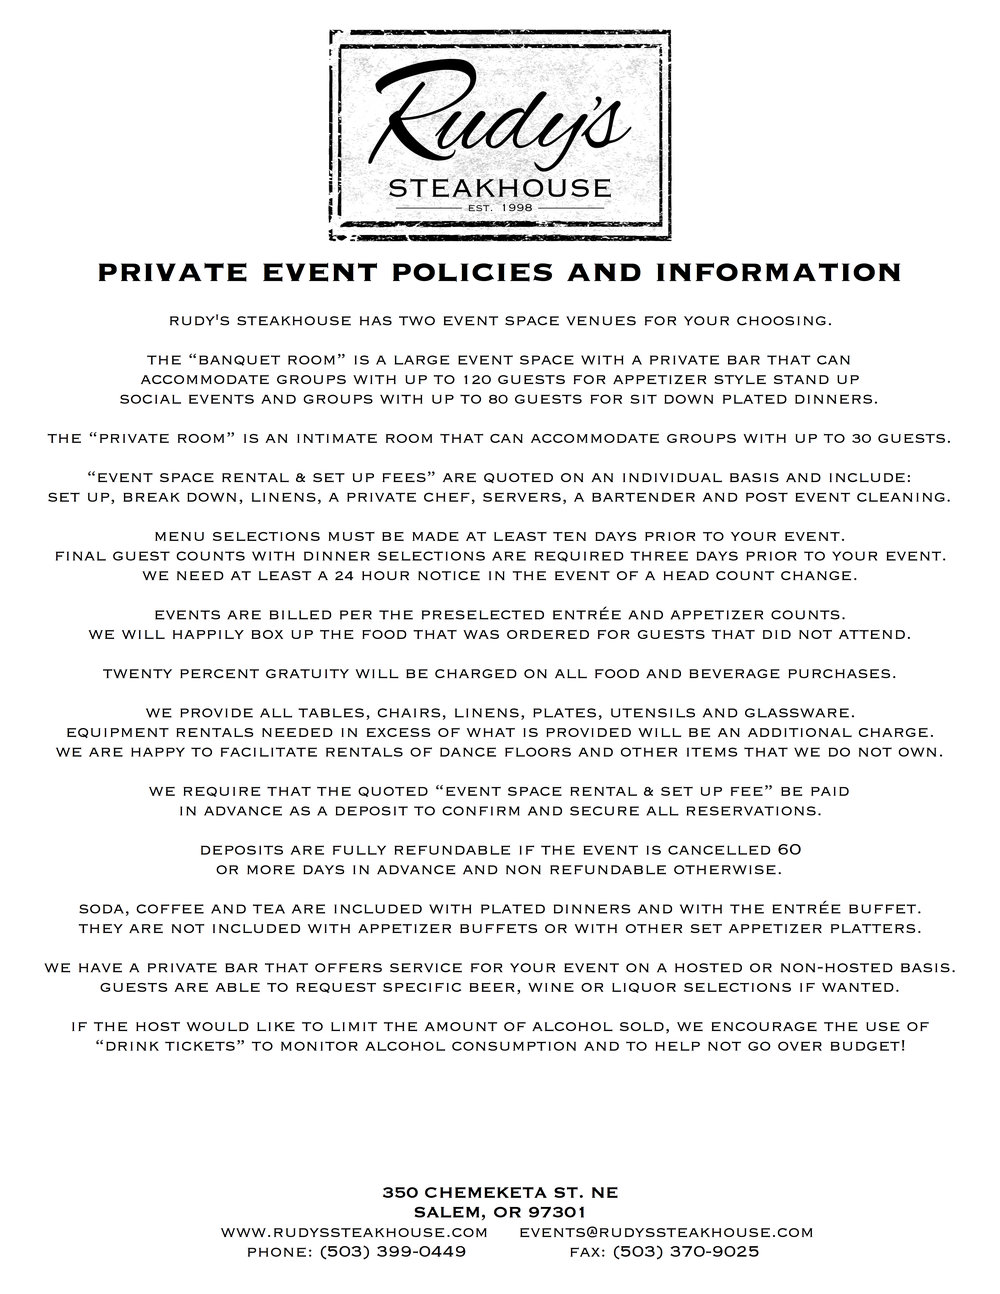 Rudy's Steakhouse Event Policies and Information.jpg